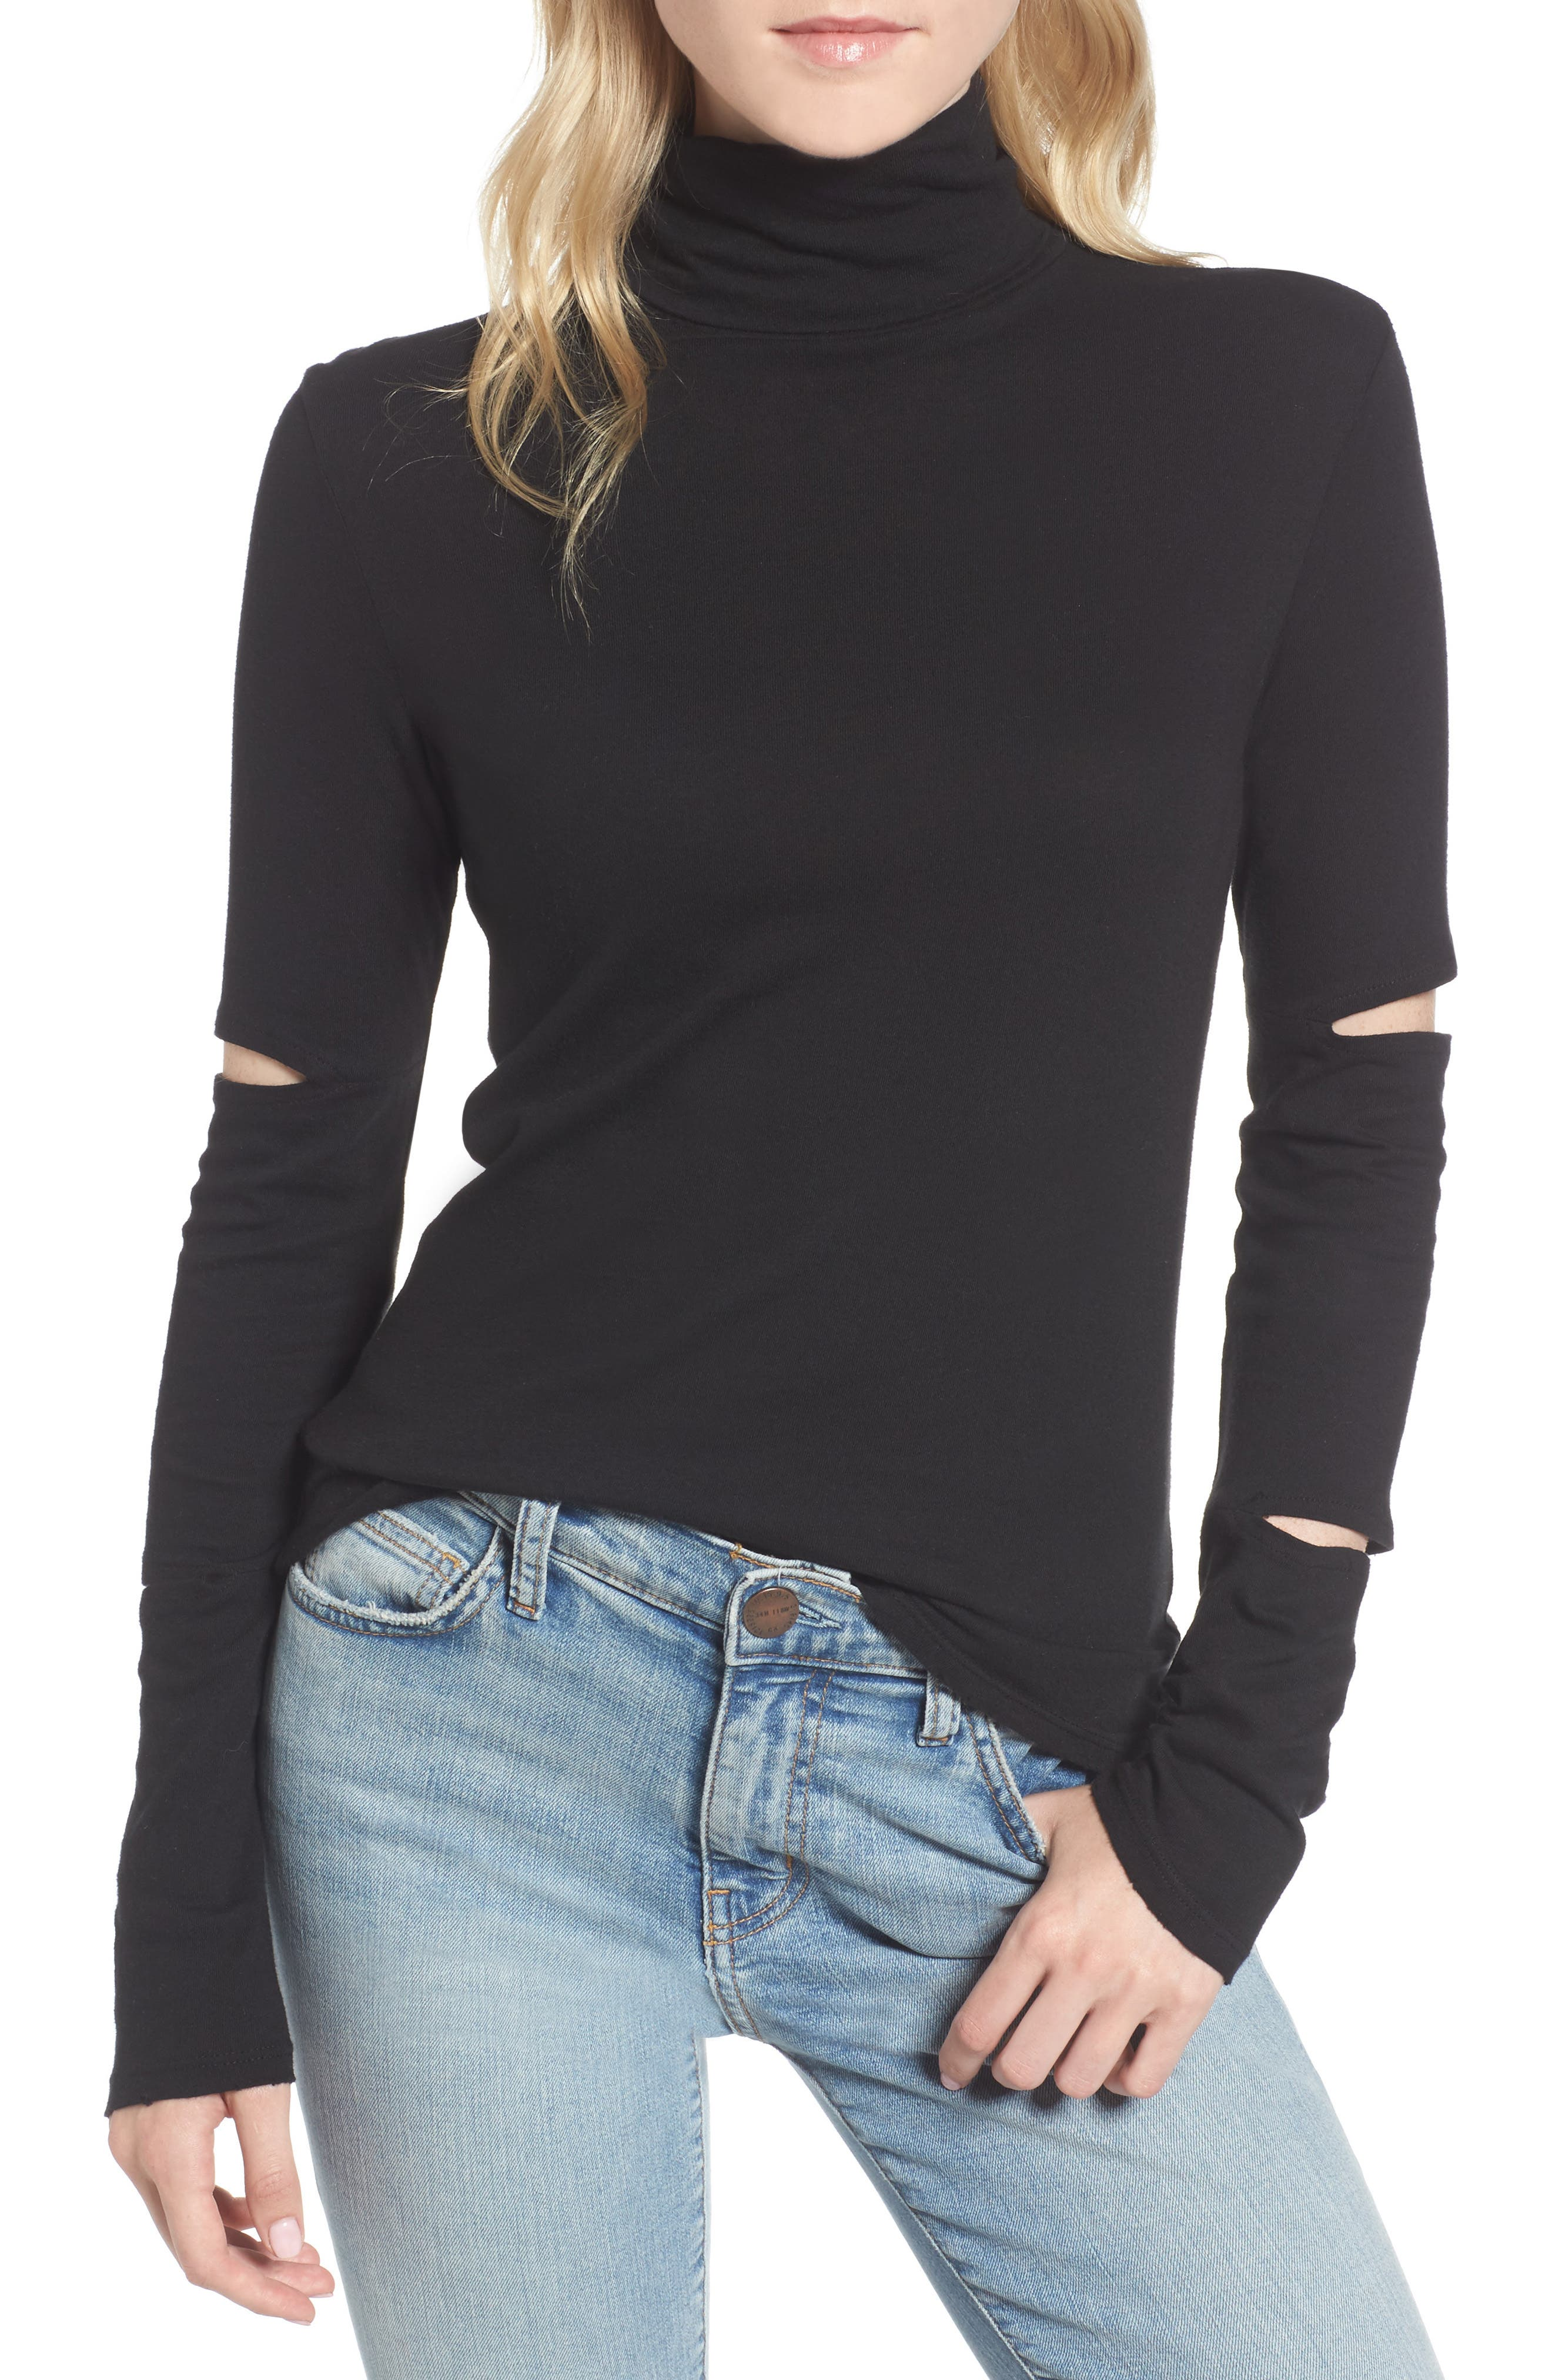 Easton Cutout Turtleneck,                             Main thumbnail 1, color,                             001